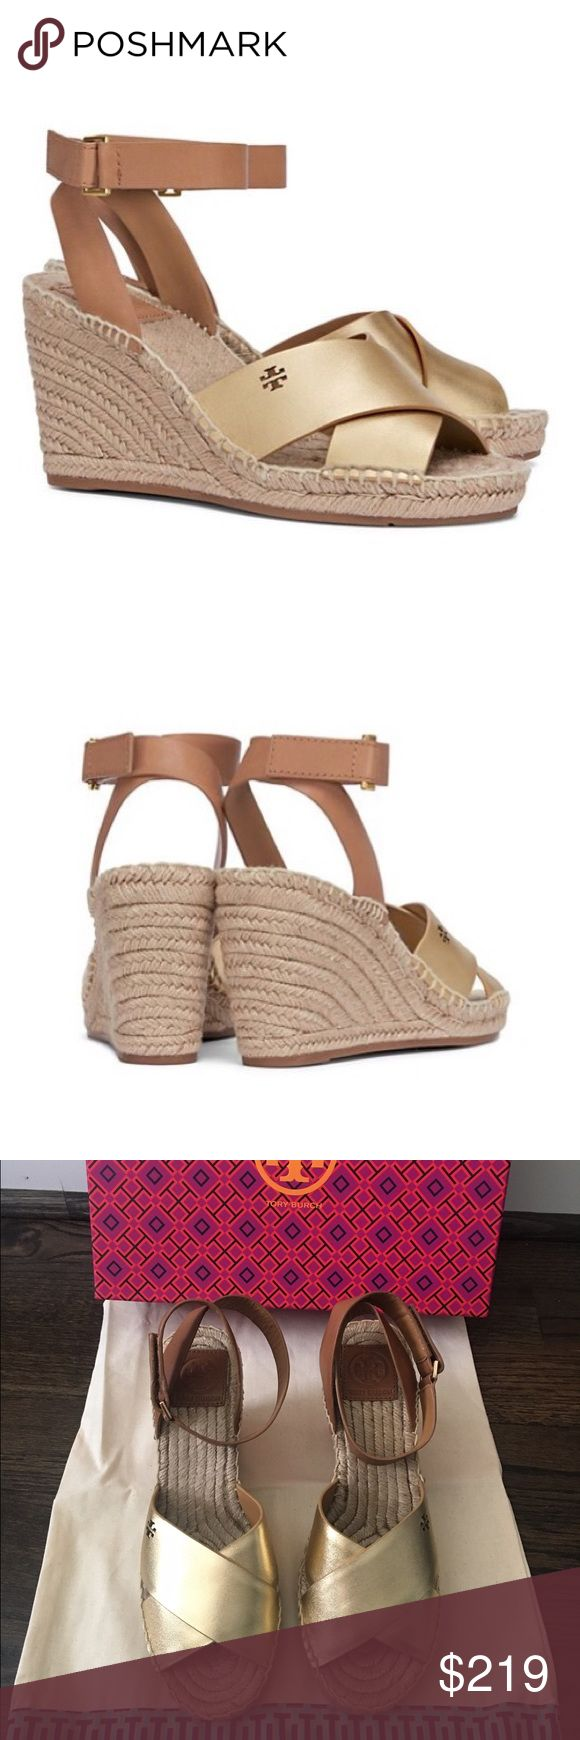 "✨NIB✨ Tory Burch Bima Metallic Espadrille Sandals Brand new in box! Authentic Tory Burch Bima metallic wedge espadrille sandals. Gold leather with cut out double T logo. Adjustable velcro ankle closure. 3.59"" jute wrapped wedge heel. Rubber sole. Size 7.5, true to size. Comes with box and dust bag. ***No Trades*** Tory Burch Shoes Wedges"